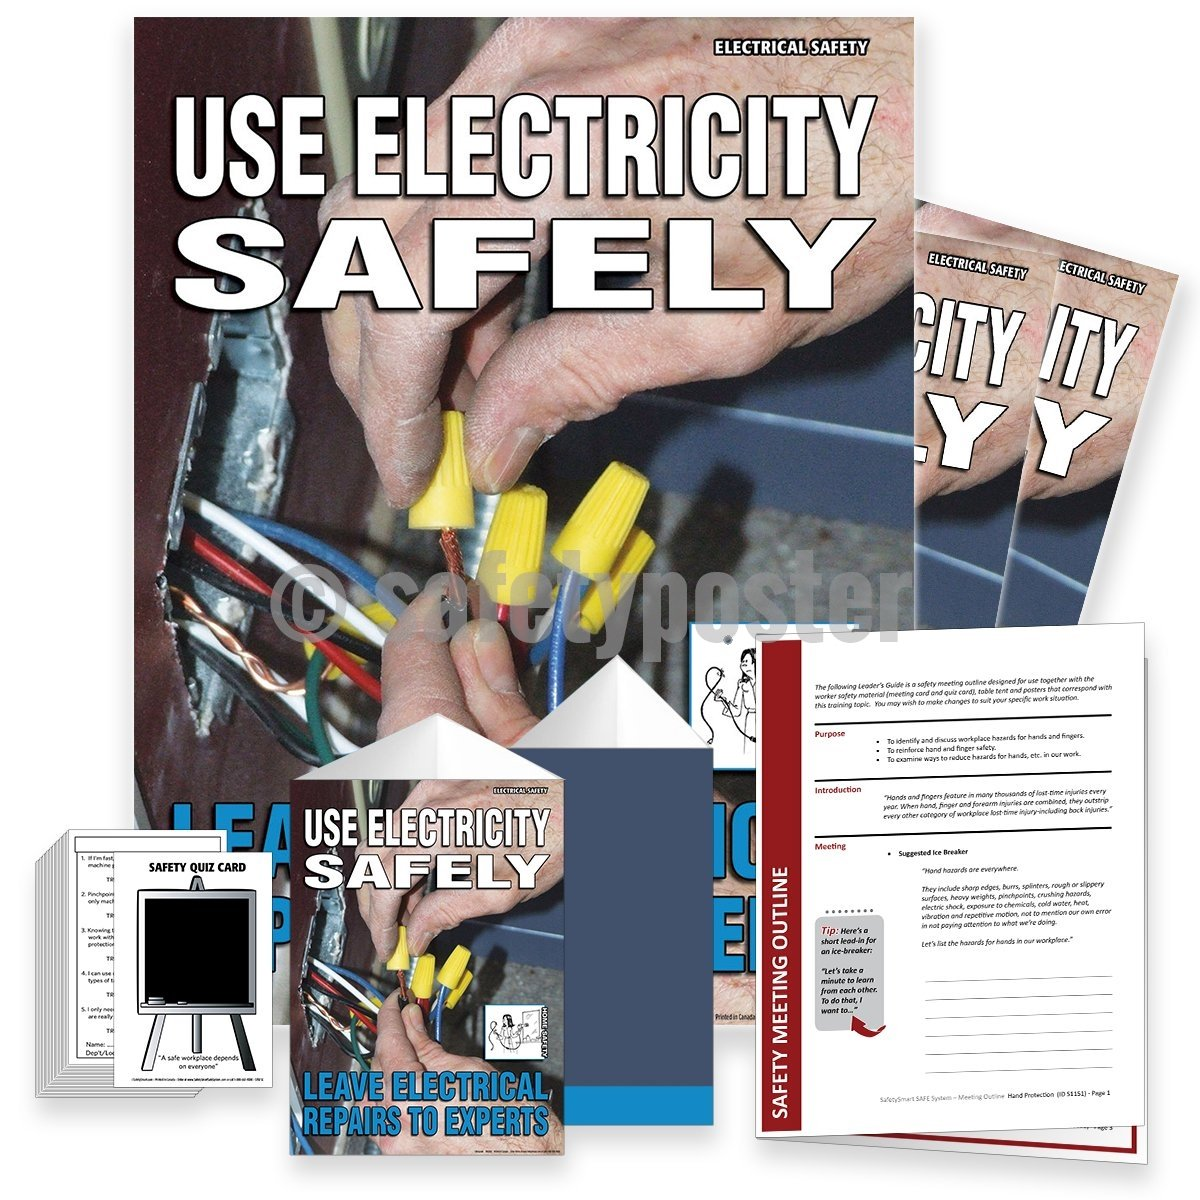 Safety Meeting Kit - Use Electricity Safely Kits